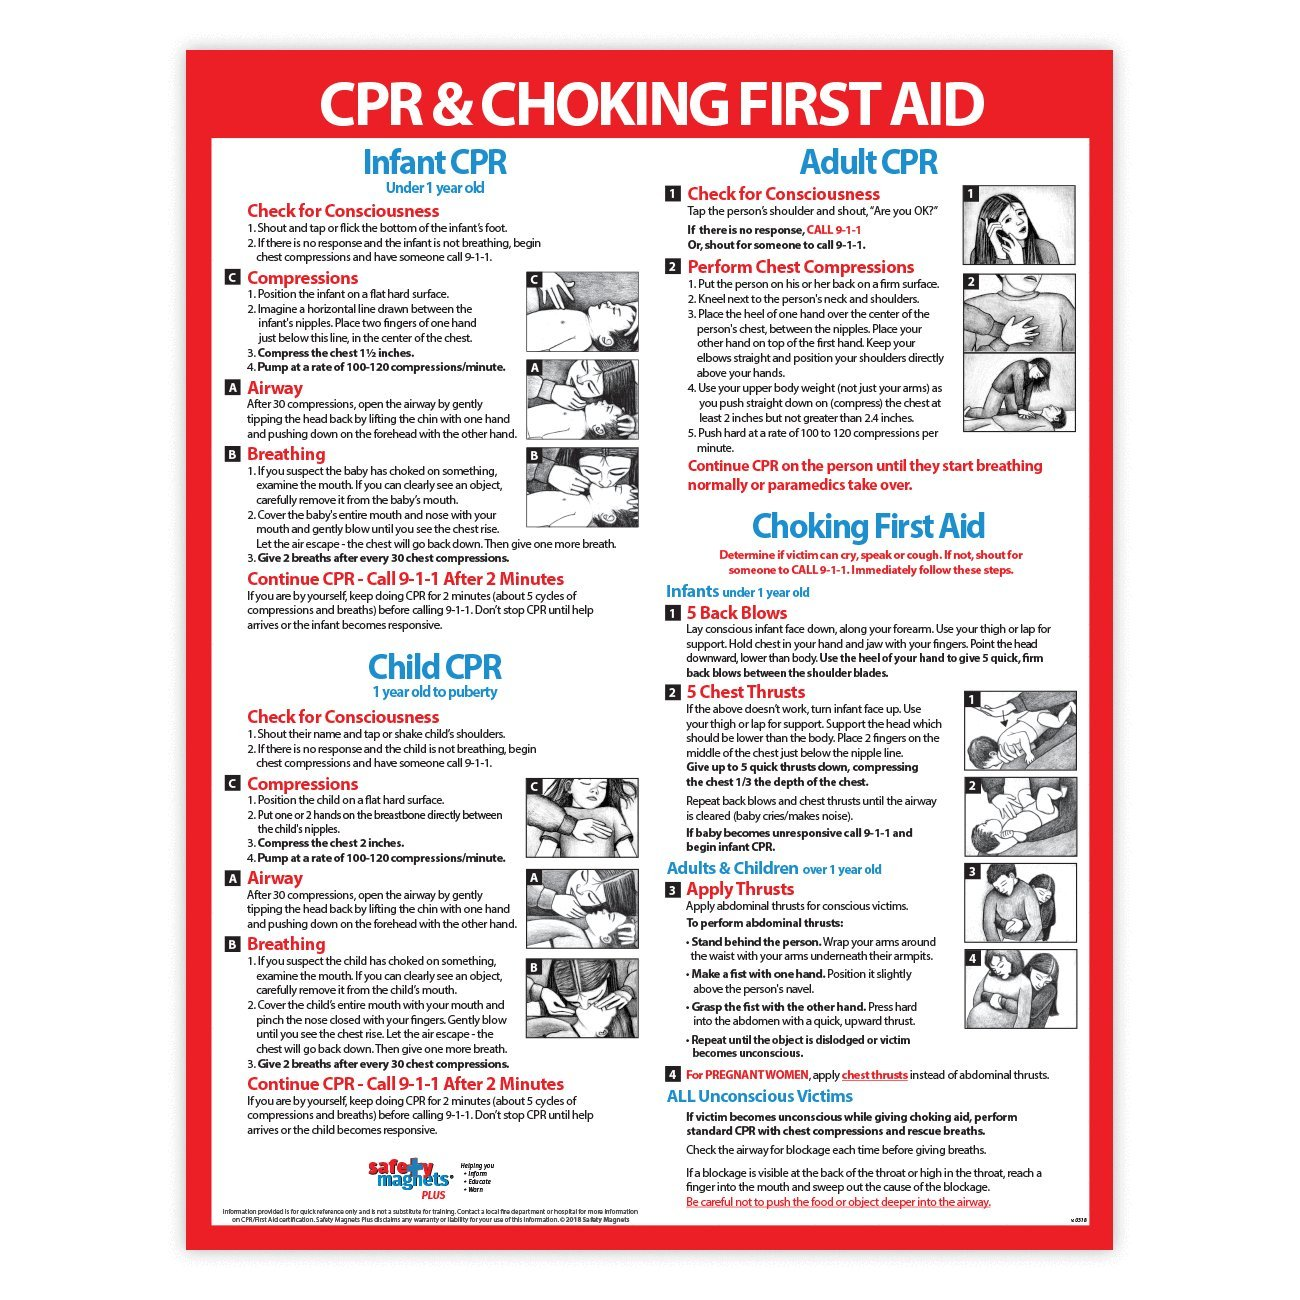 CPR & Choking First Aid Instructions Poster - Infant, Child, and Adult - Laminated - 17 x 22 in.